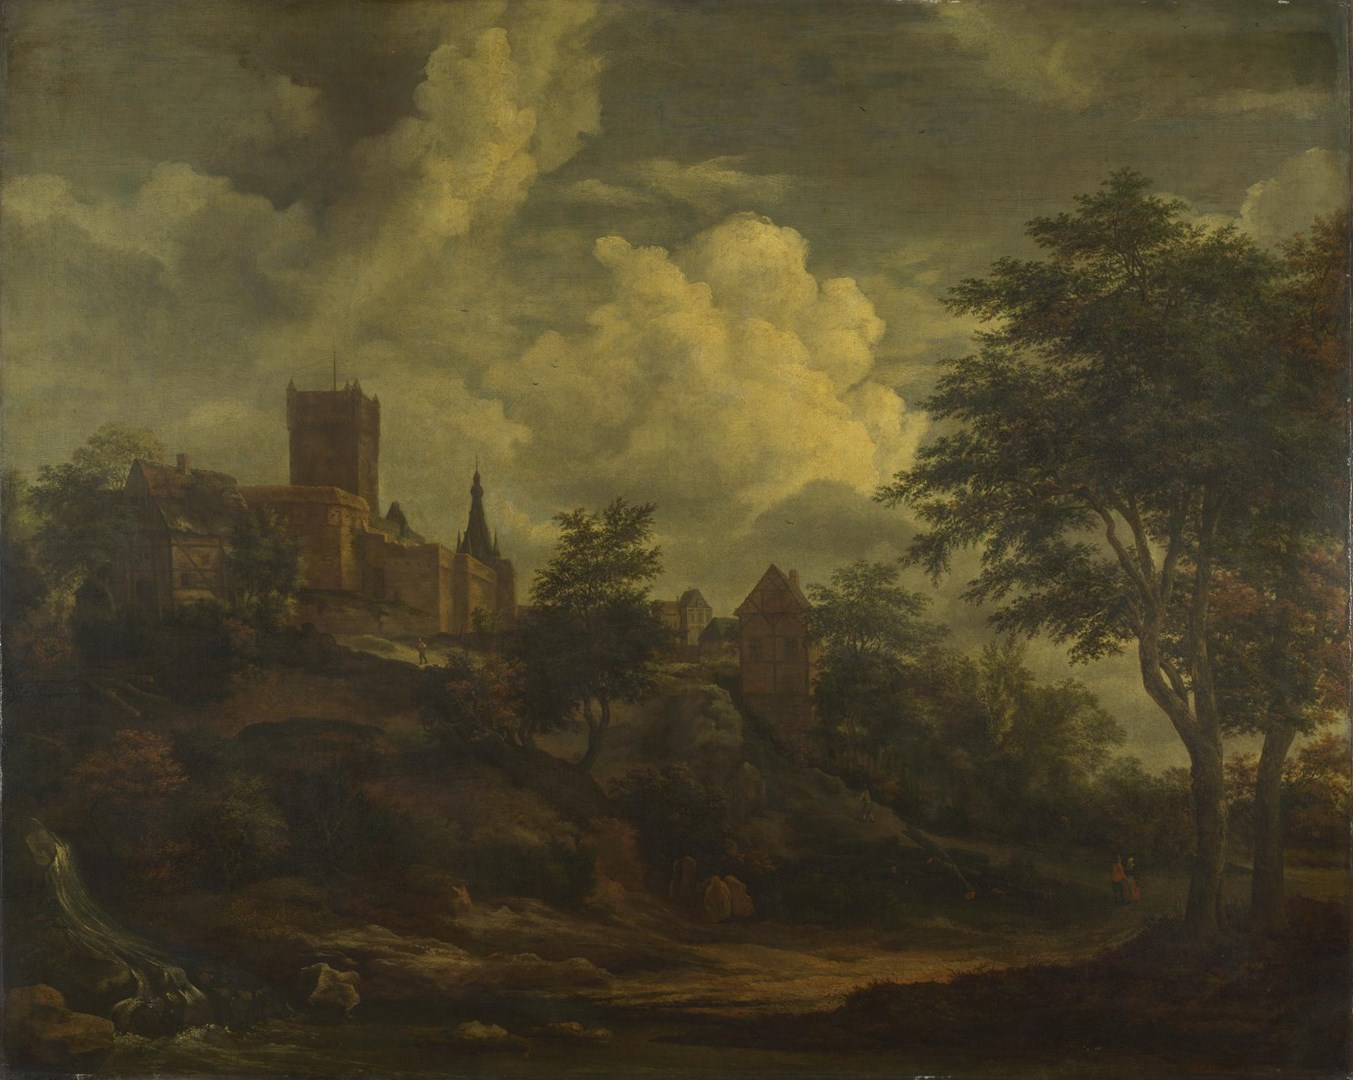 A Castle on a Hill by a River by Imitator of Jacob van Ruisdael